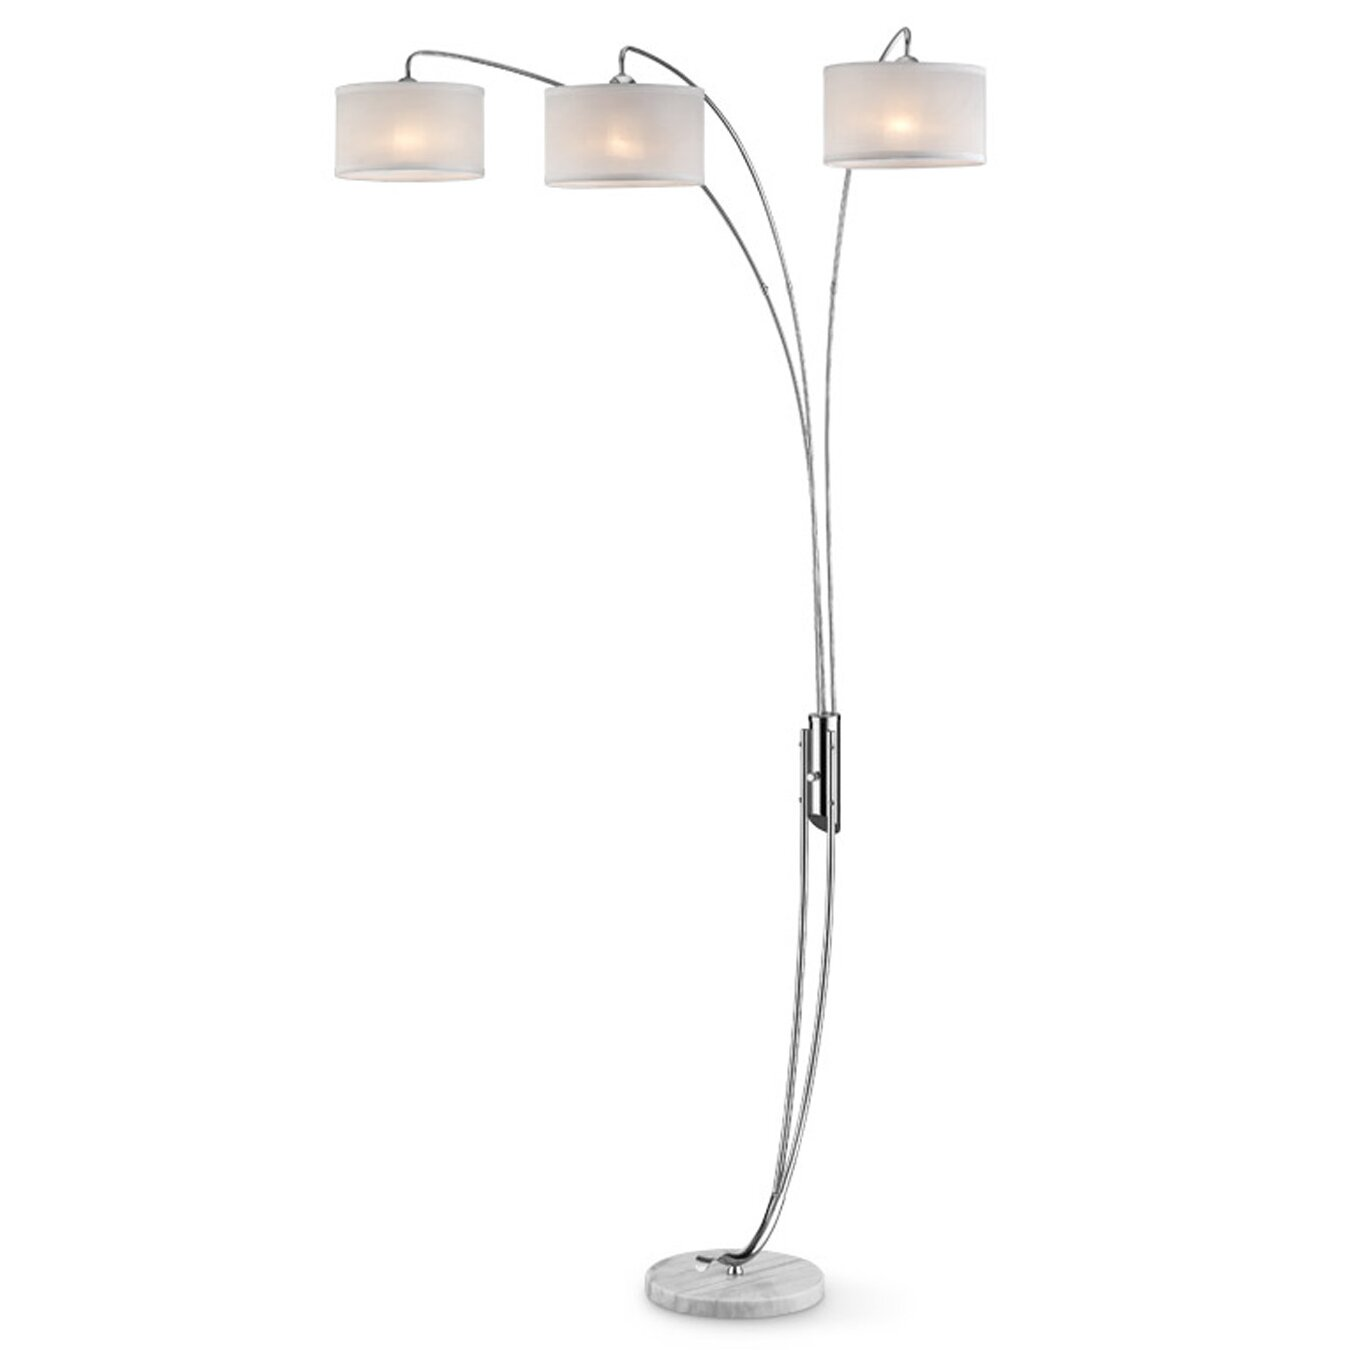 Lighting Lamps Floor Lamps ORE Furniture SKU: ORE2286